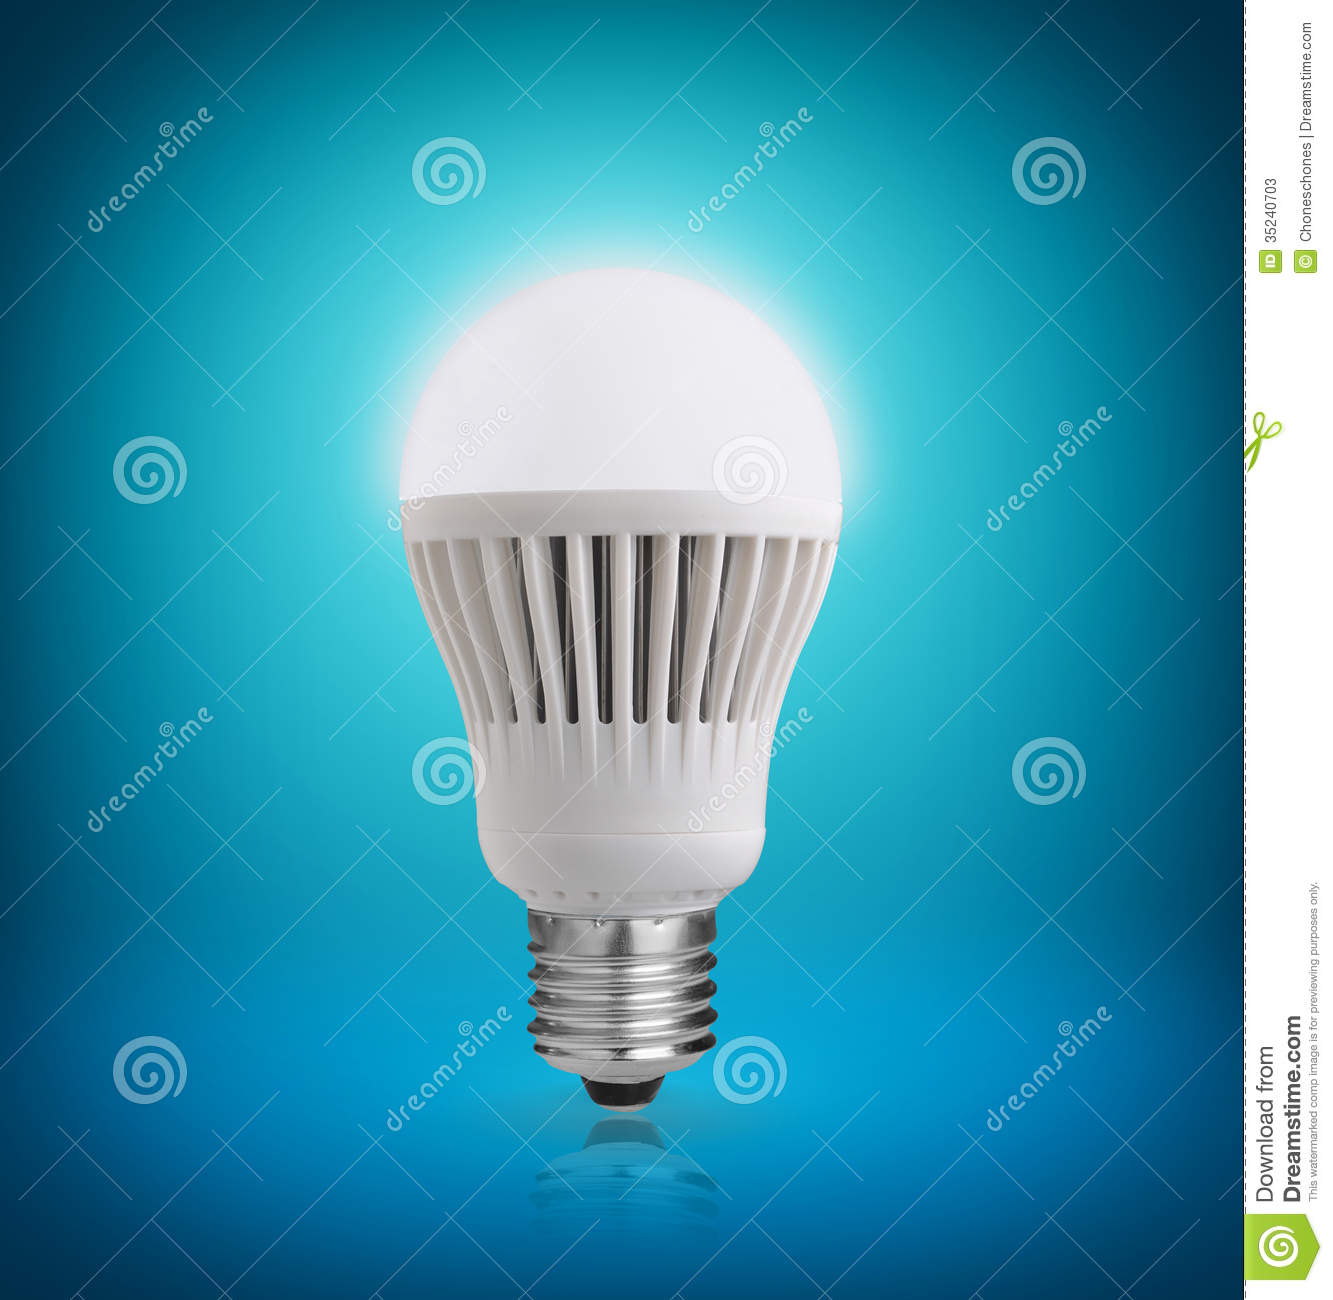 LED bulb stock image. Image of environmental, environment - 35240703 for glowing cfl bulb  157uhy